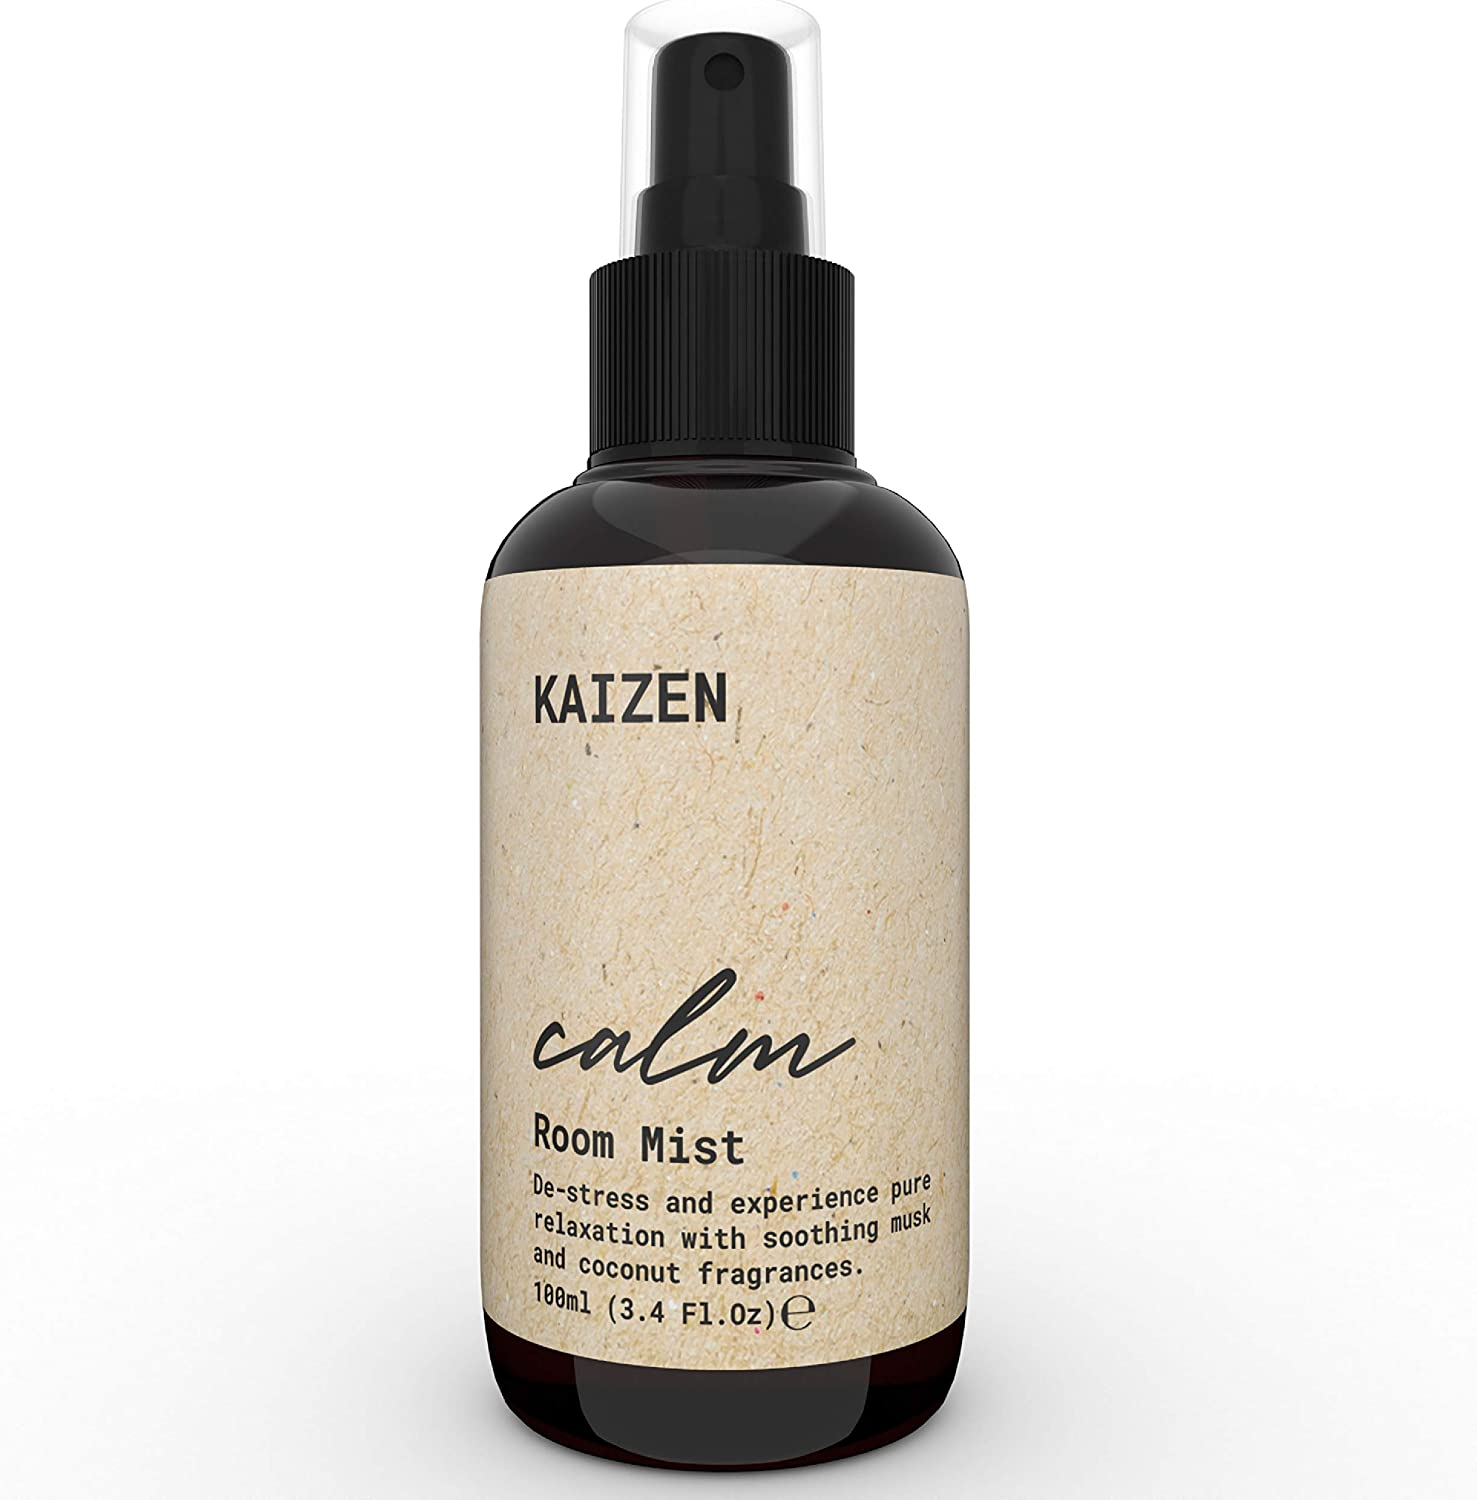 KAIZEN Natural Room Spray with Delicate Coconut Fragrance - Soft Mist Room Freshener Spray For Stress Relief & Anxiety Relief - Pillow Spray for Sleeping - Natural Air Freshener Spray, 3.38 Fl Oz: Health & Personal Care